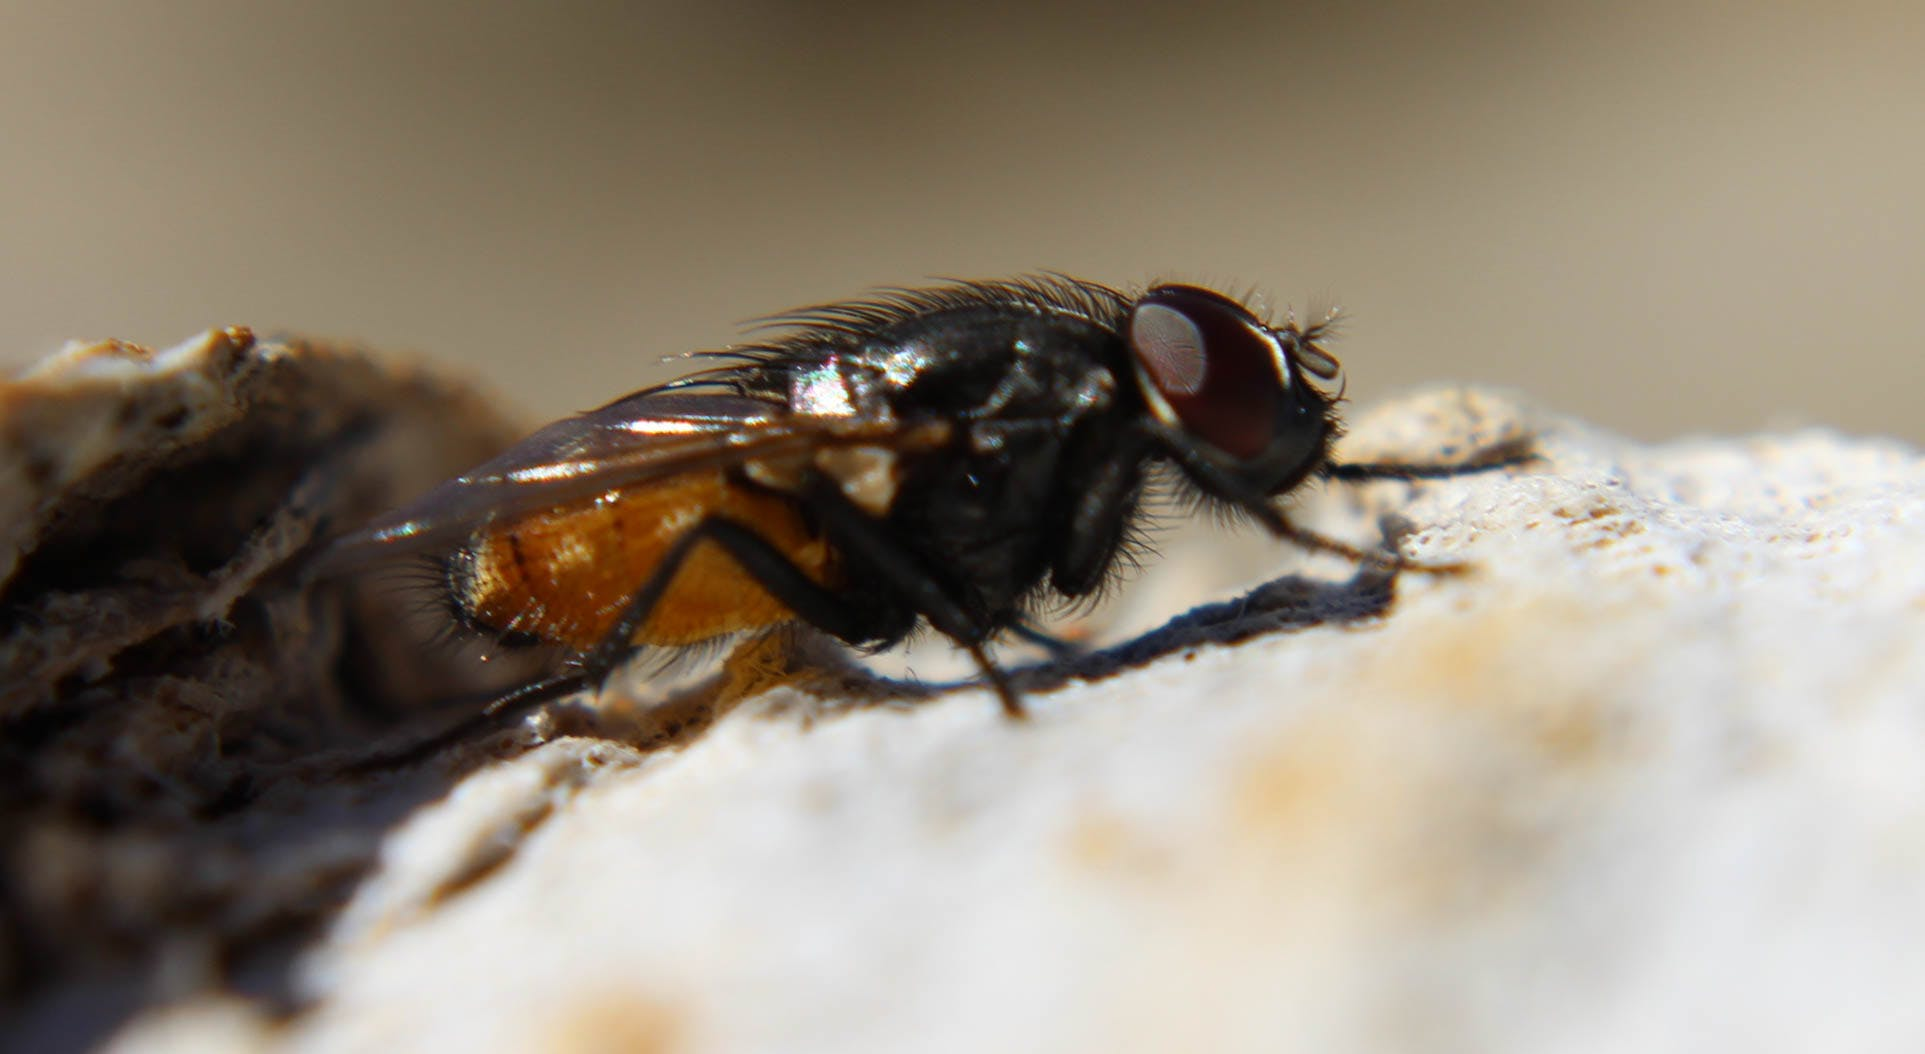 Black Fly on Rock in Macro Photography during Daytime